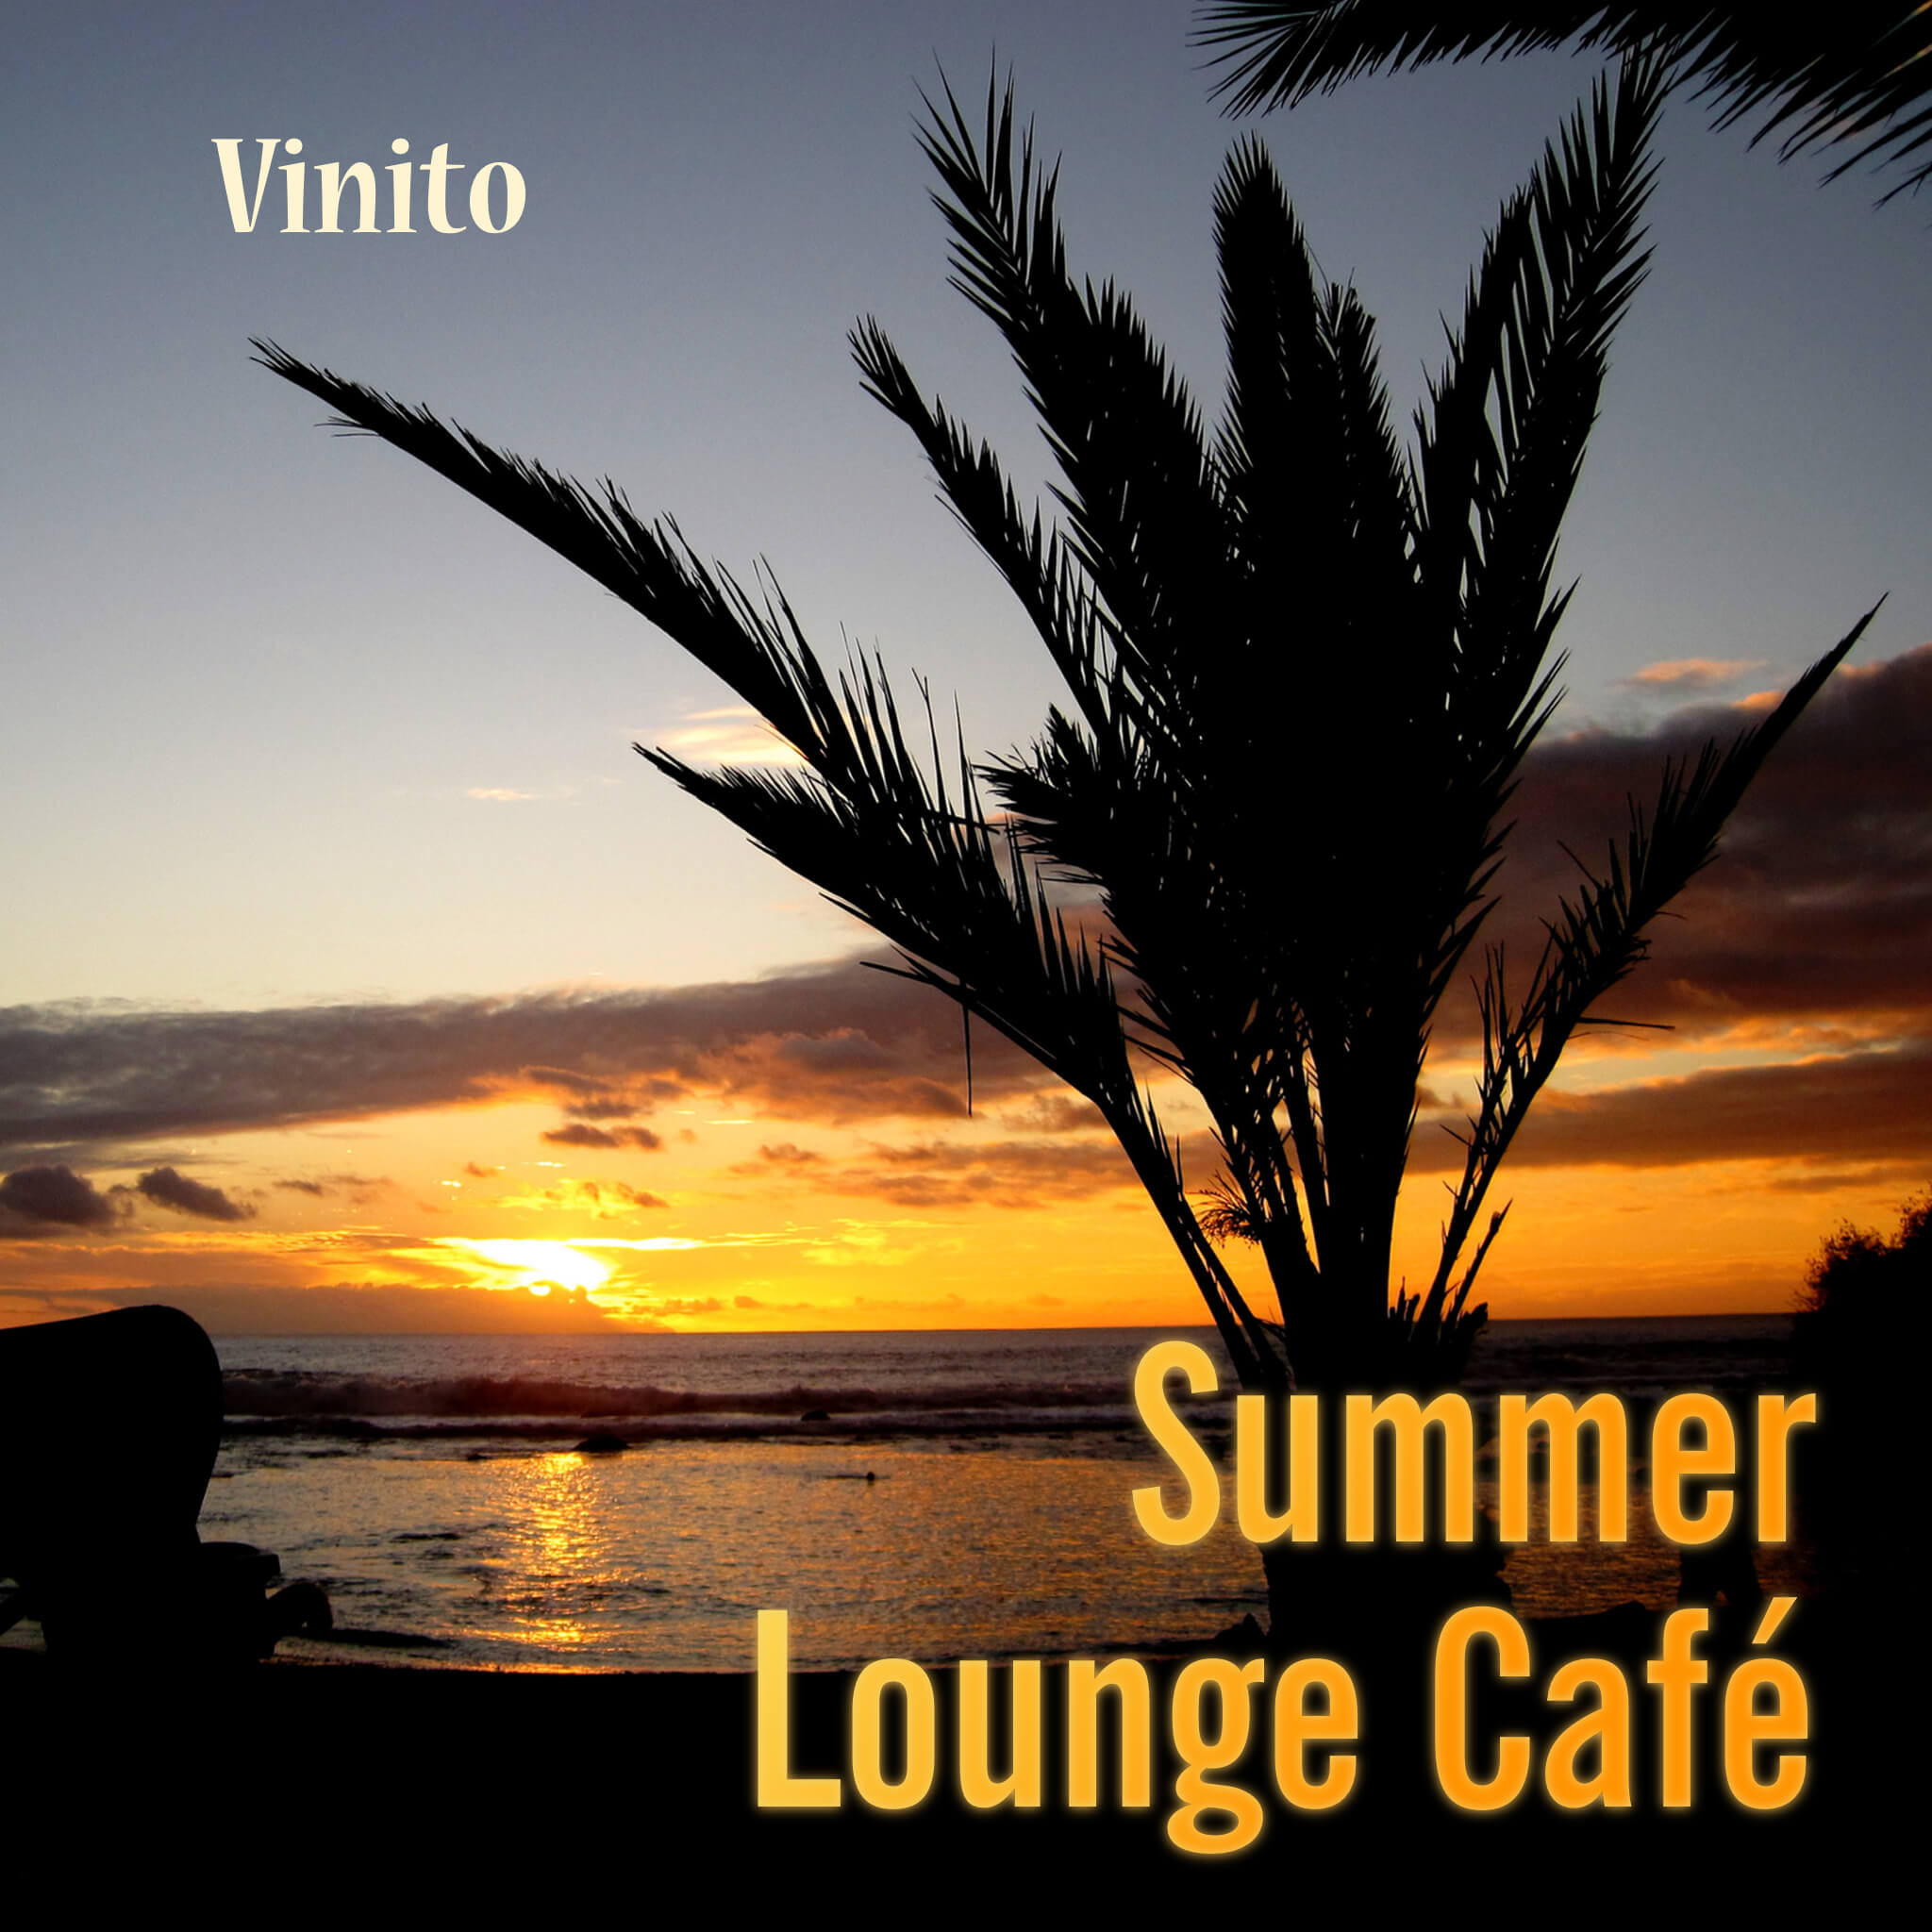 vinito-summer-lounge-cafe